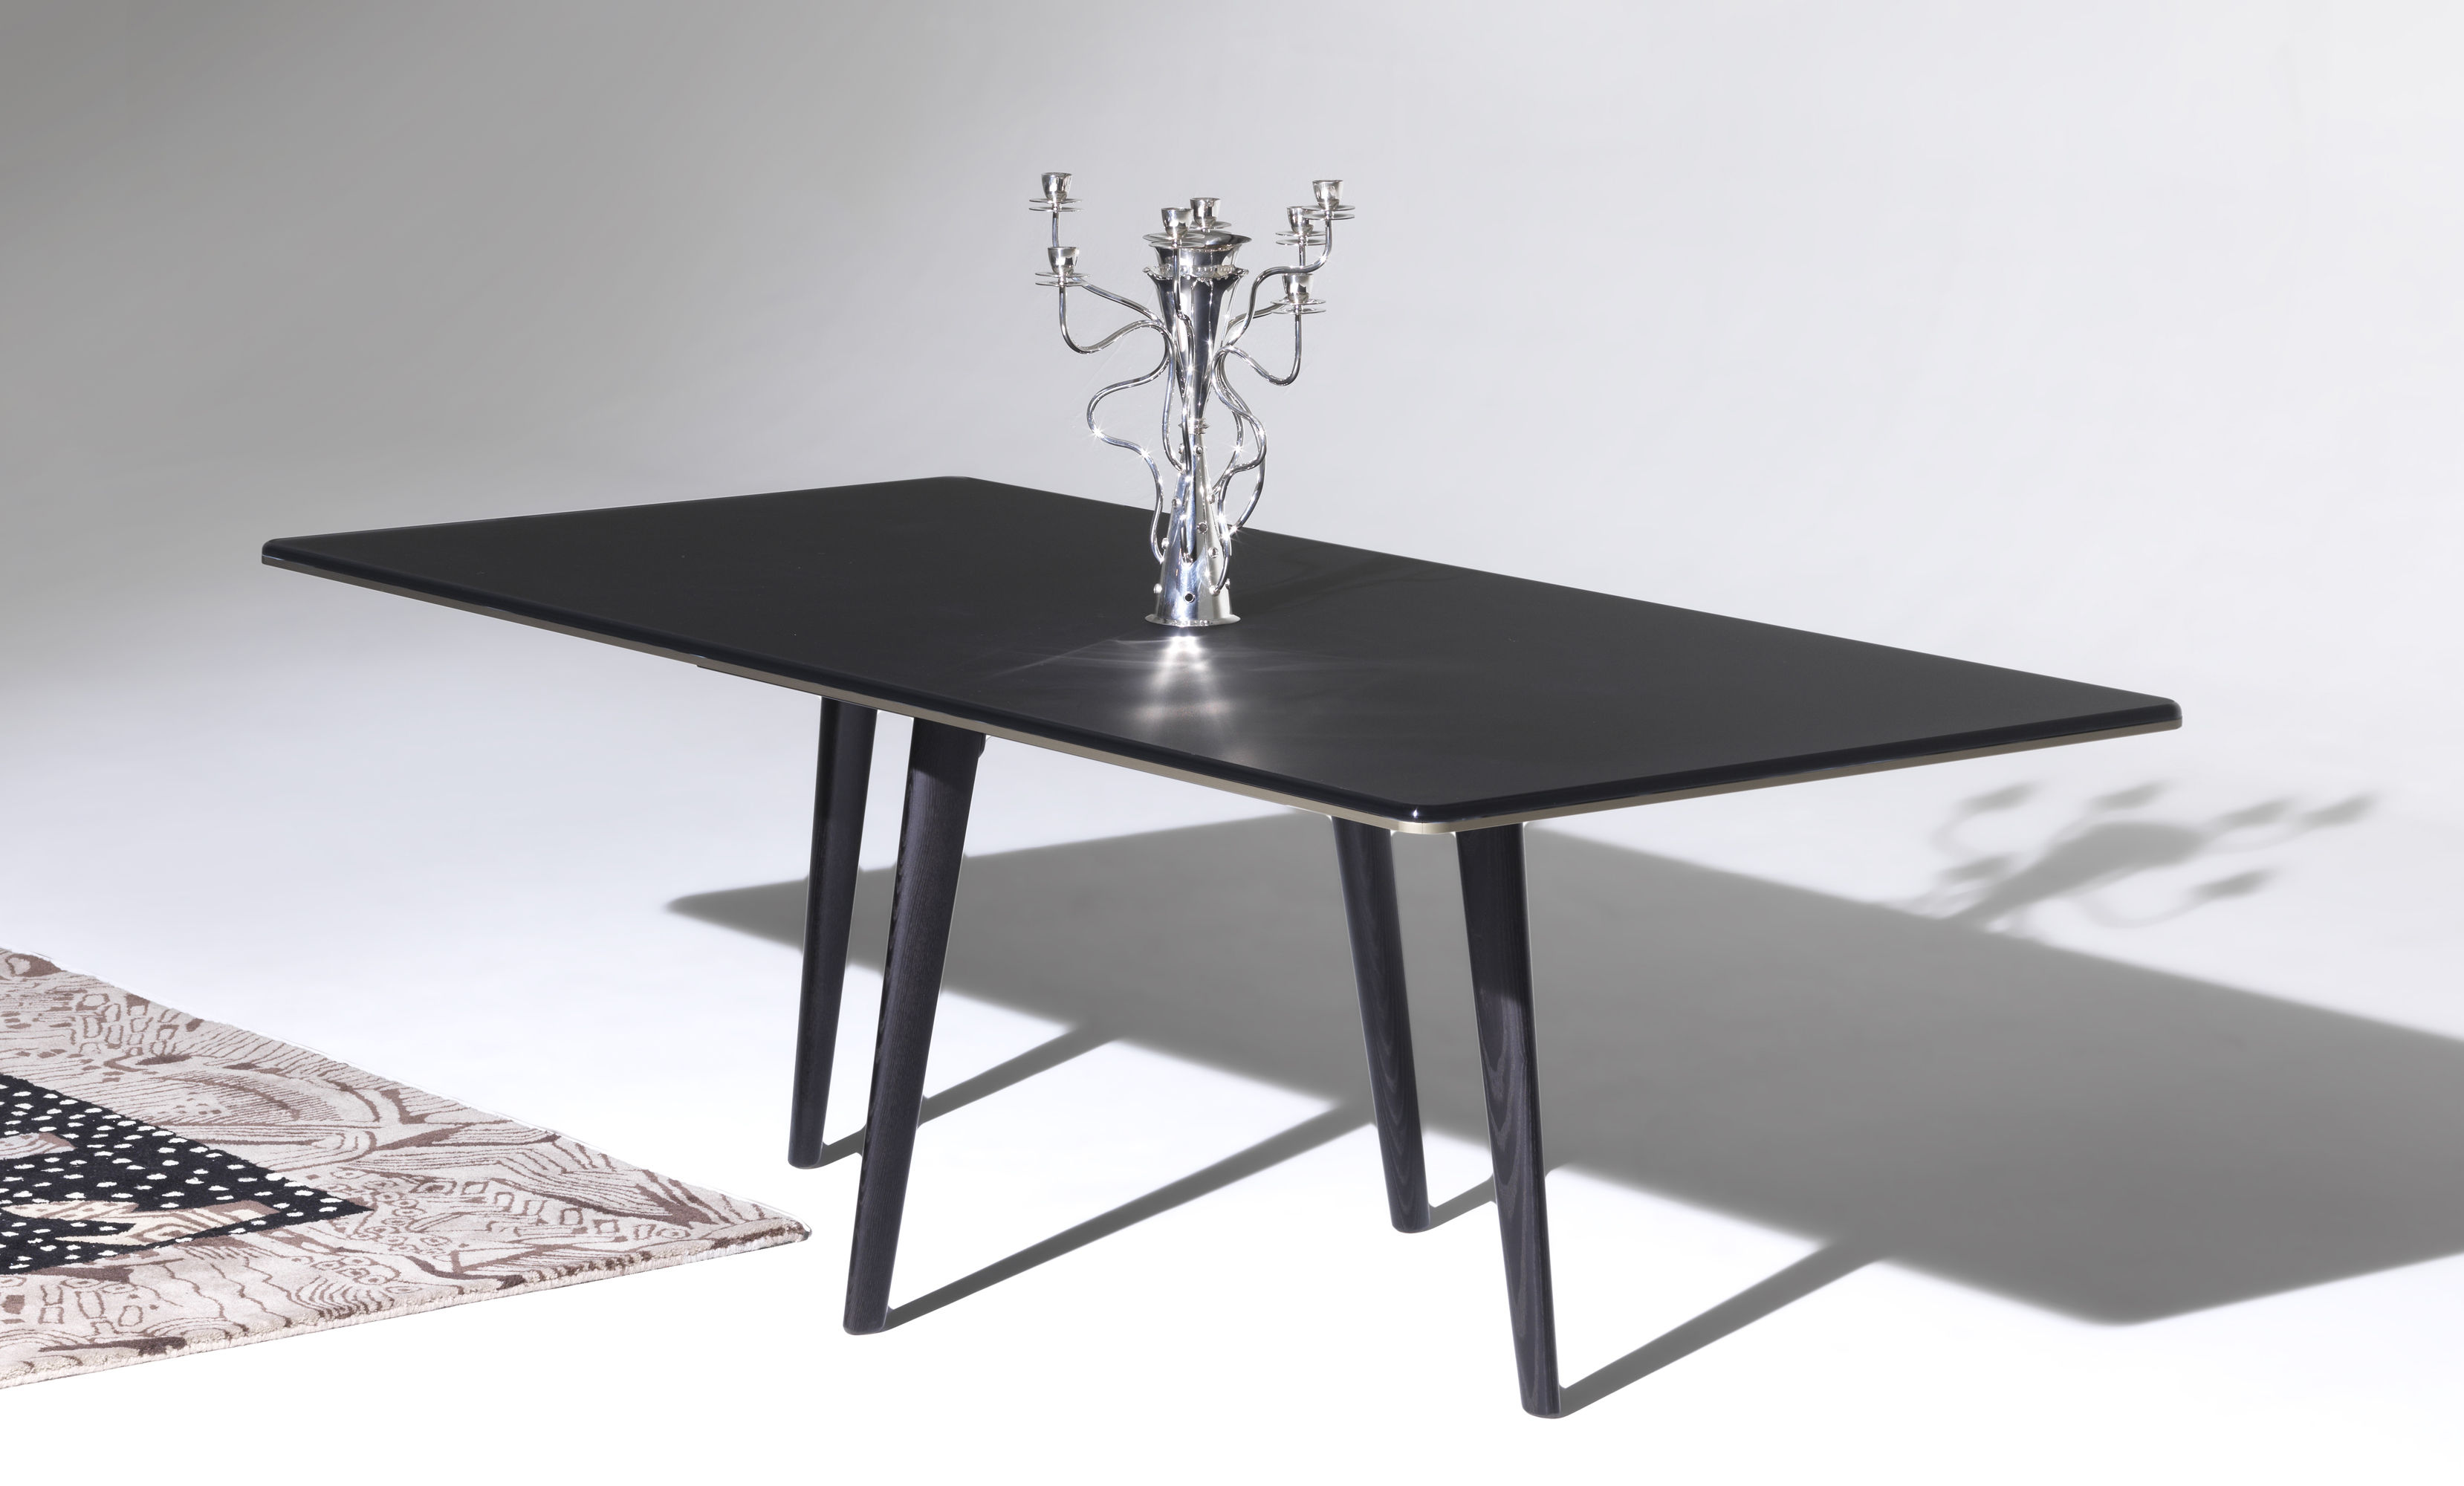 fran ois 210 x 100 cm tischplatte aus glas driade tisch. Black Bedroom Furniture Sets. Home Design Ideas